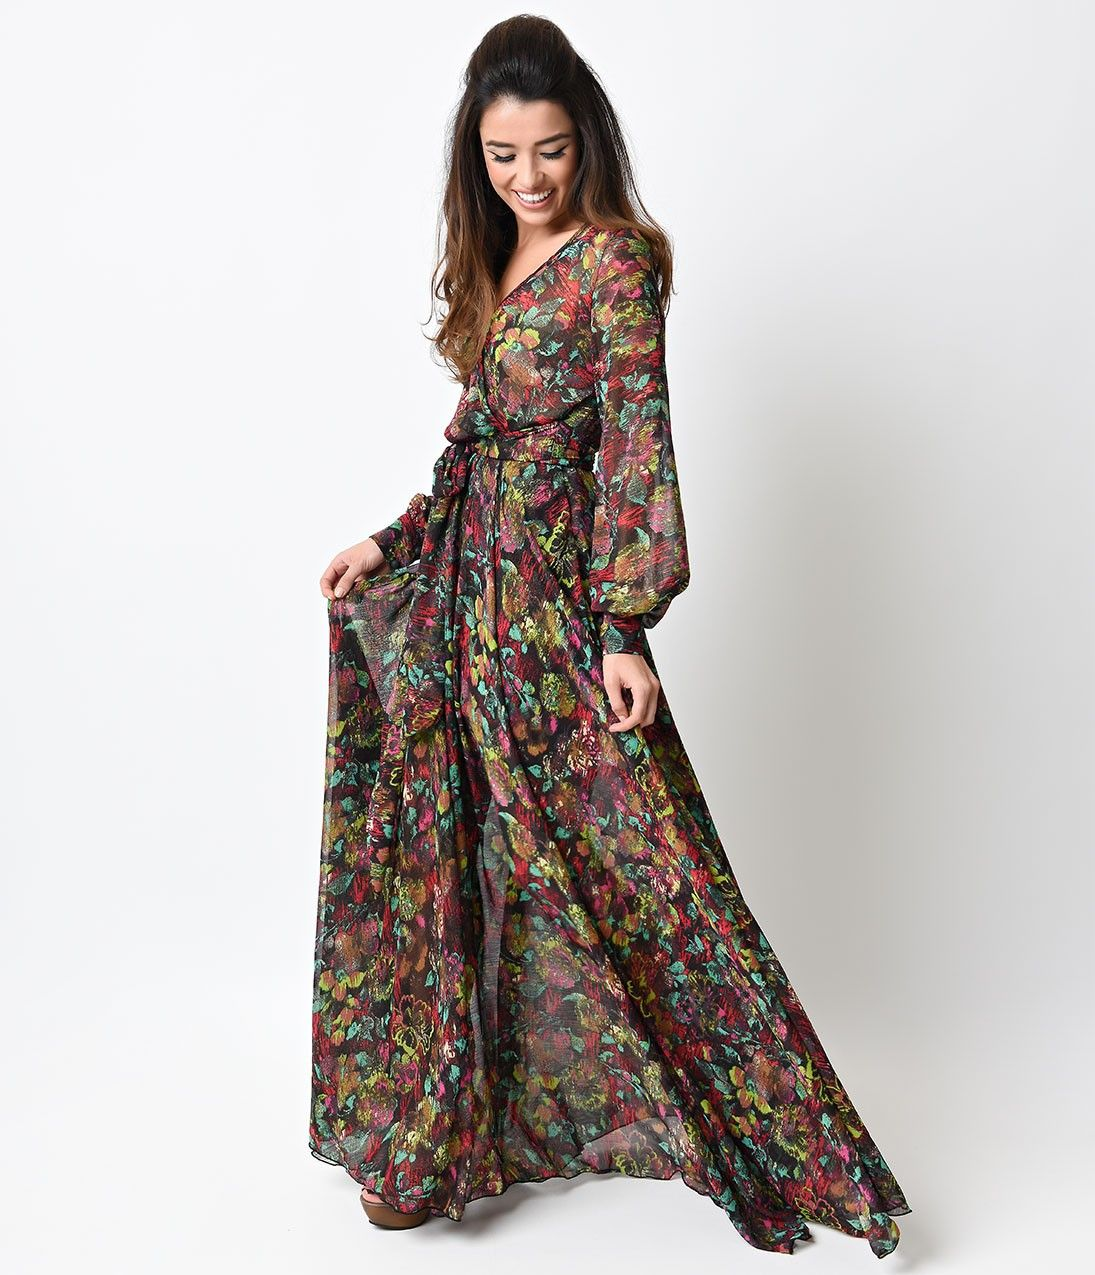 S style dark floral long sleeve shimmer maxi dress dresses